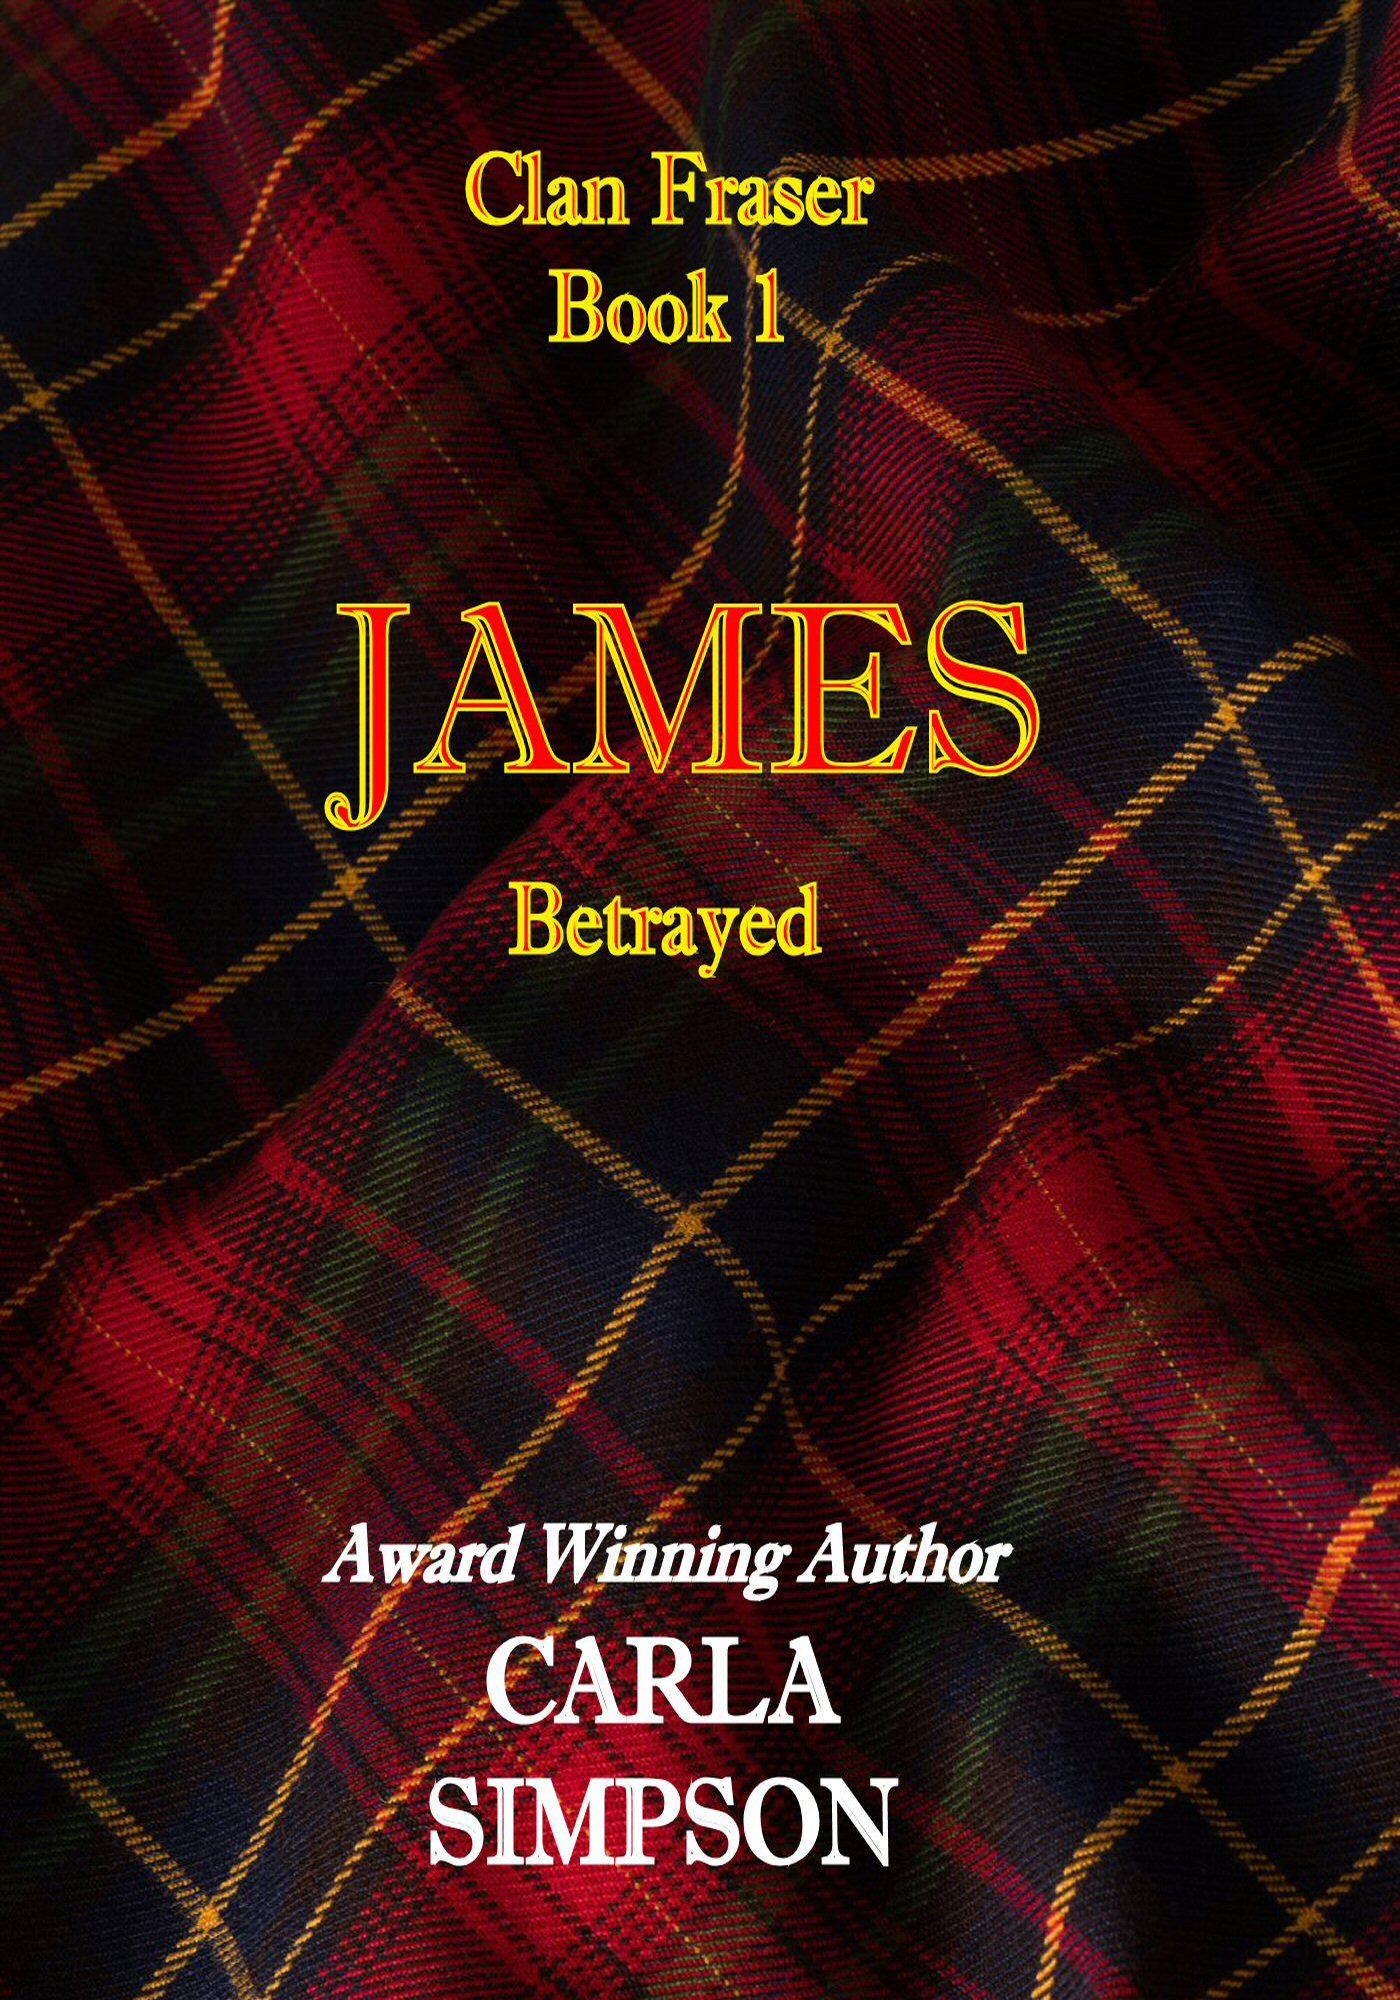 Clan Fraser: Book One -- JAMES, an Ebook by Carla Simpson